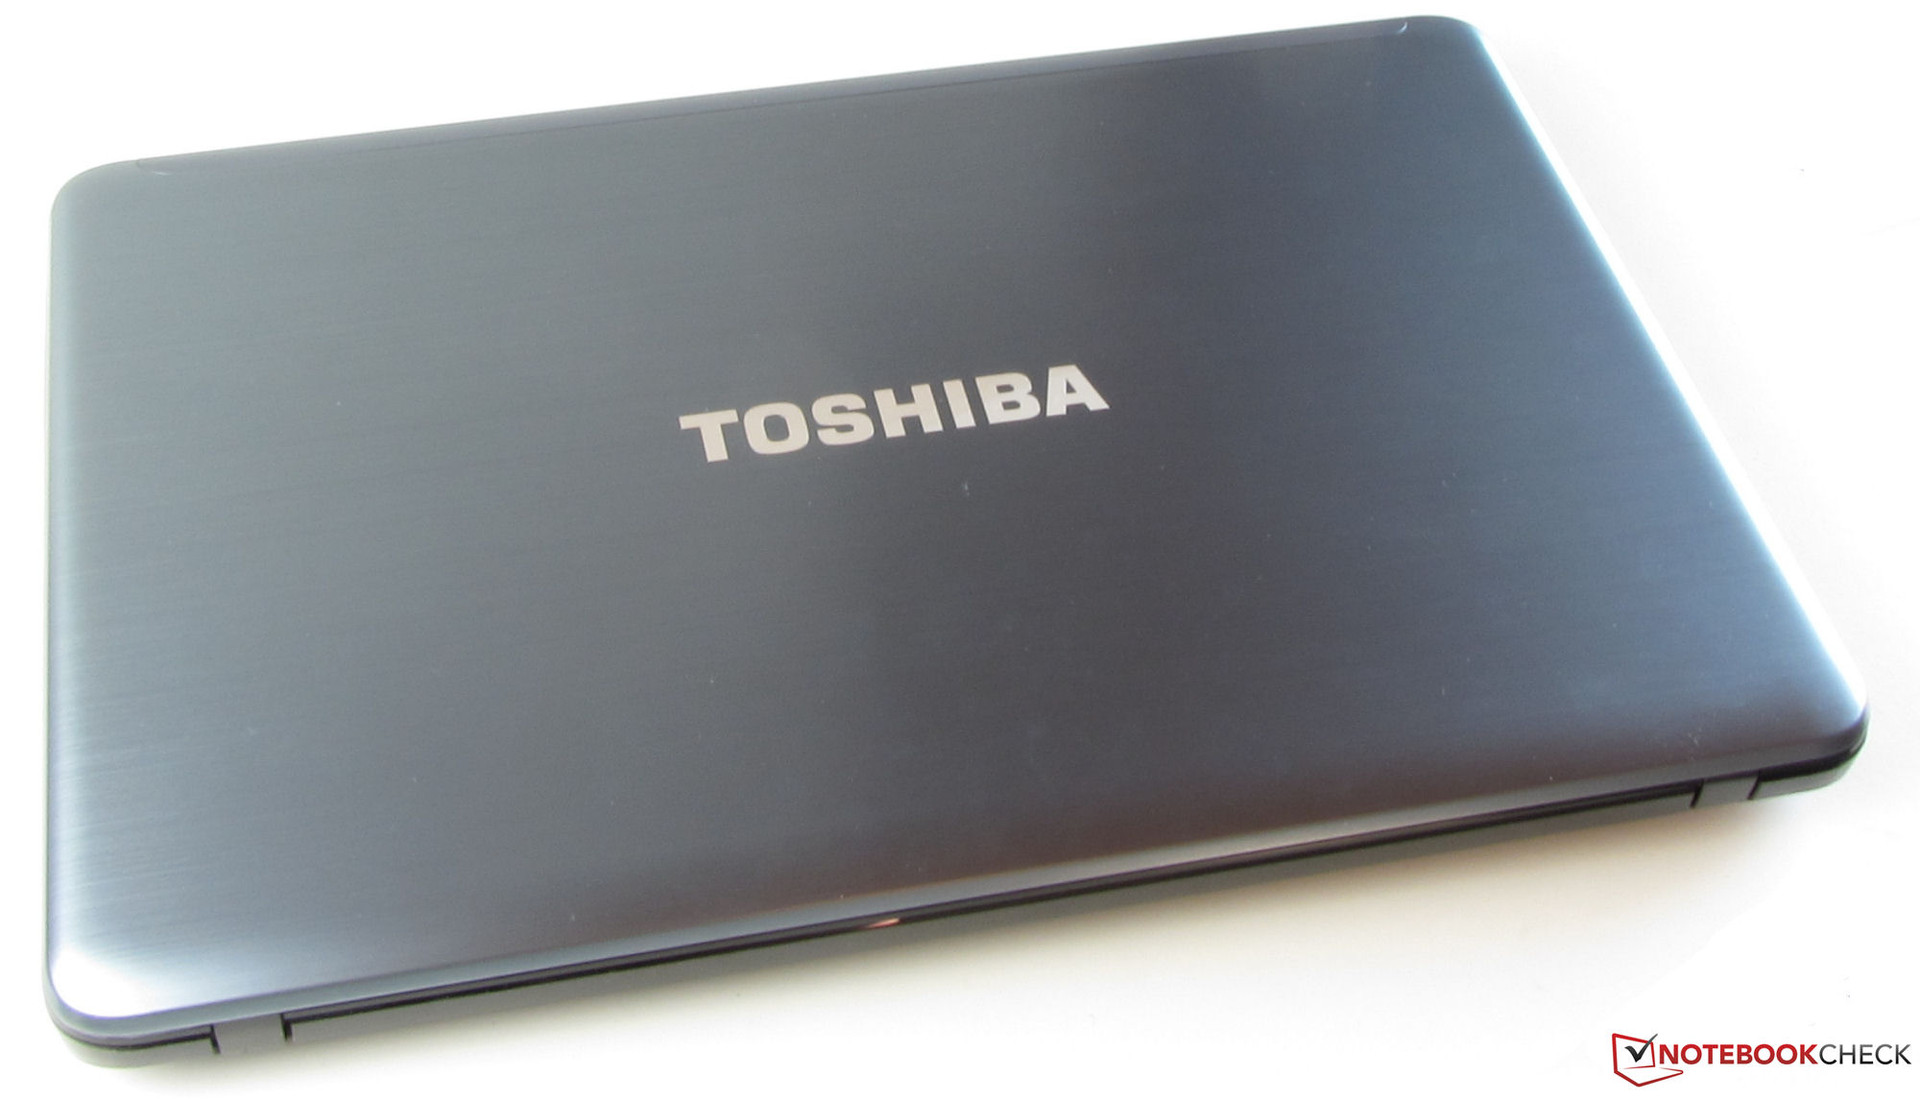 DRIVERS UPDATE: TOSHIBA SATELLITE L875D BLUETOOTH MONITOR